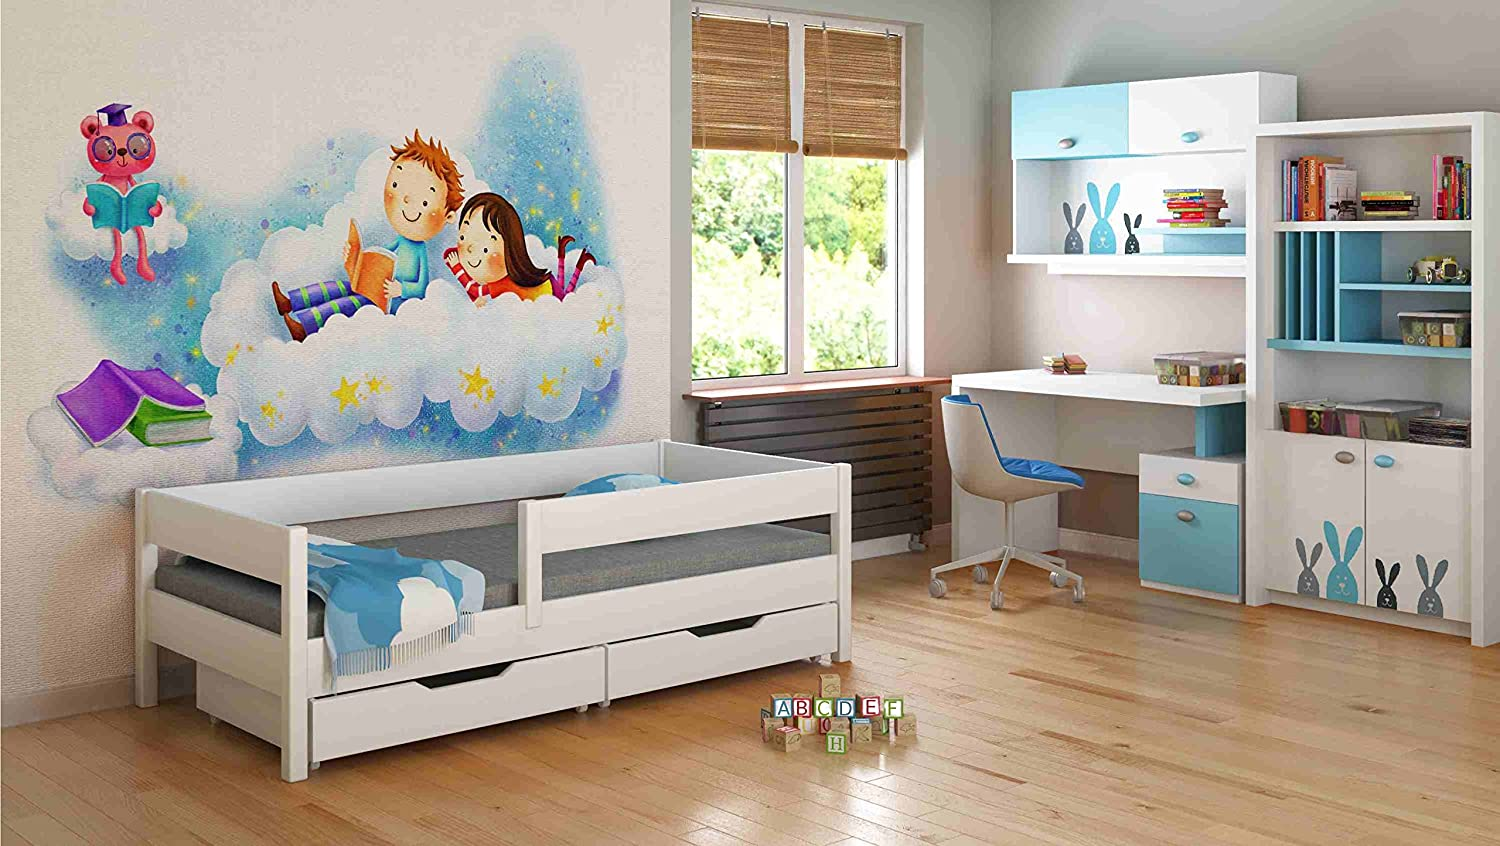 Single Beds For Kids Children Toddler Junior 140x70/160x80/180x80/180x90/200x90 NO DRAWERS NO MATTRESS INCLUDED (140x70, White)